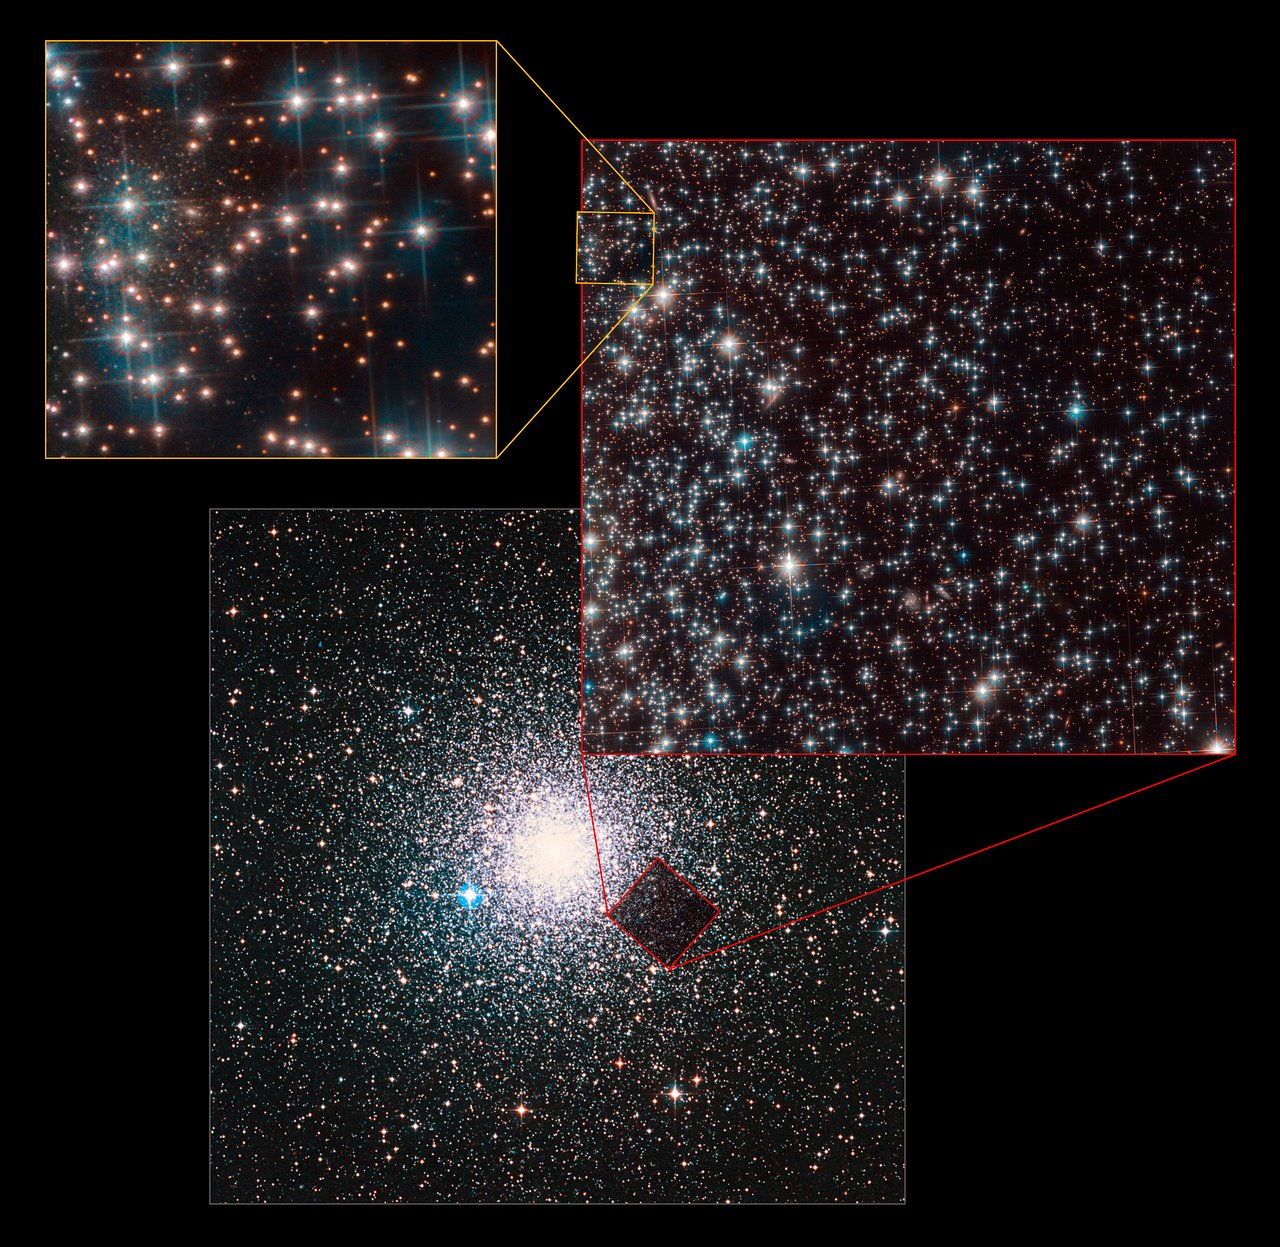 Hubble Accidentally Finds Entire Galaxy Lurking Behind a Cluster of Stars